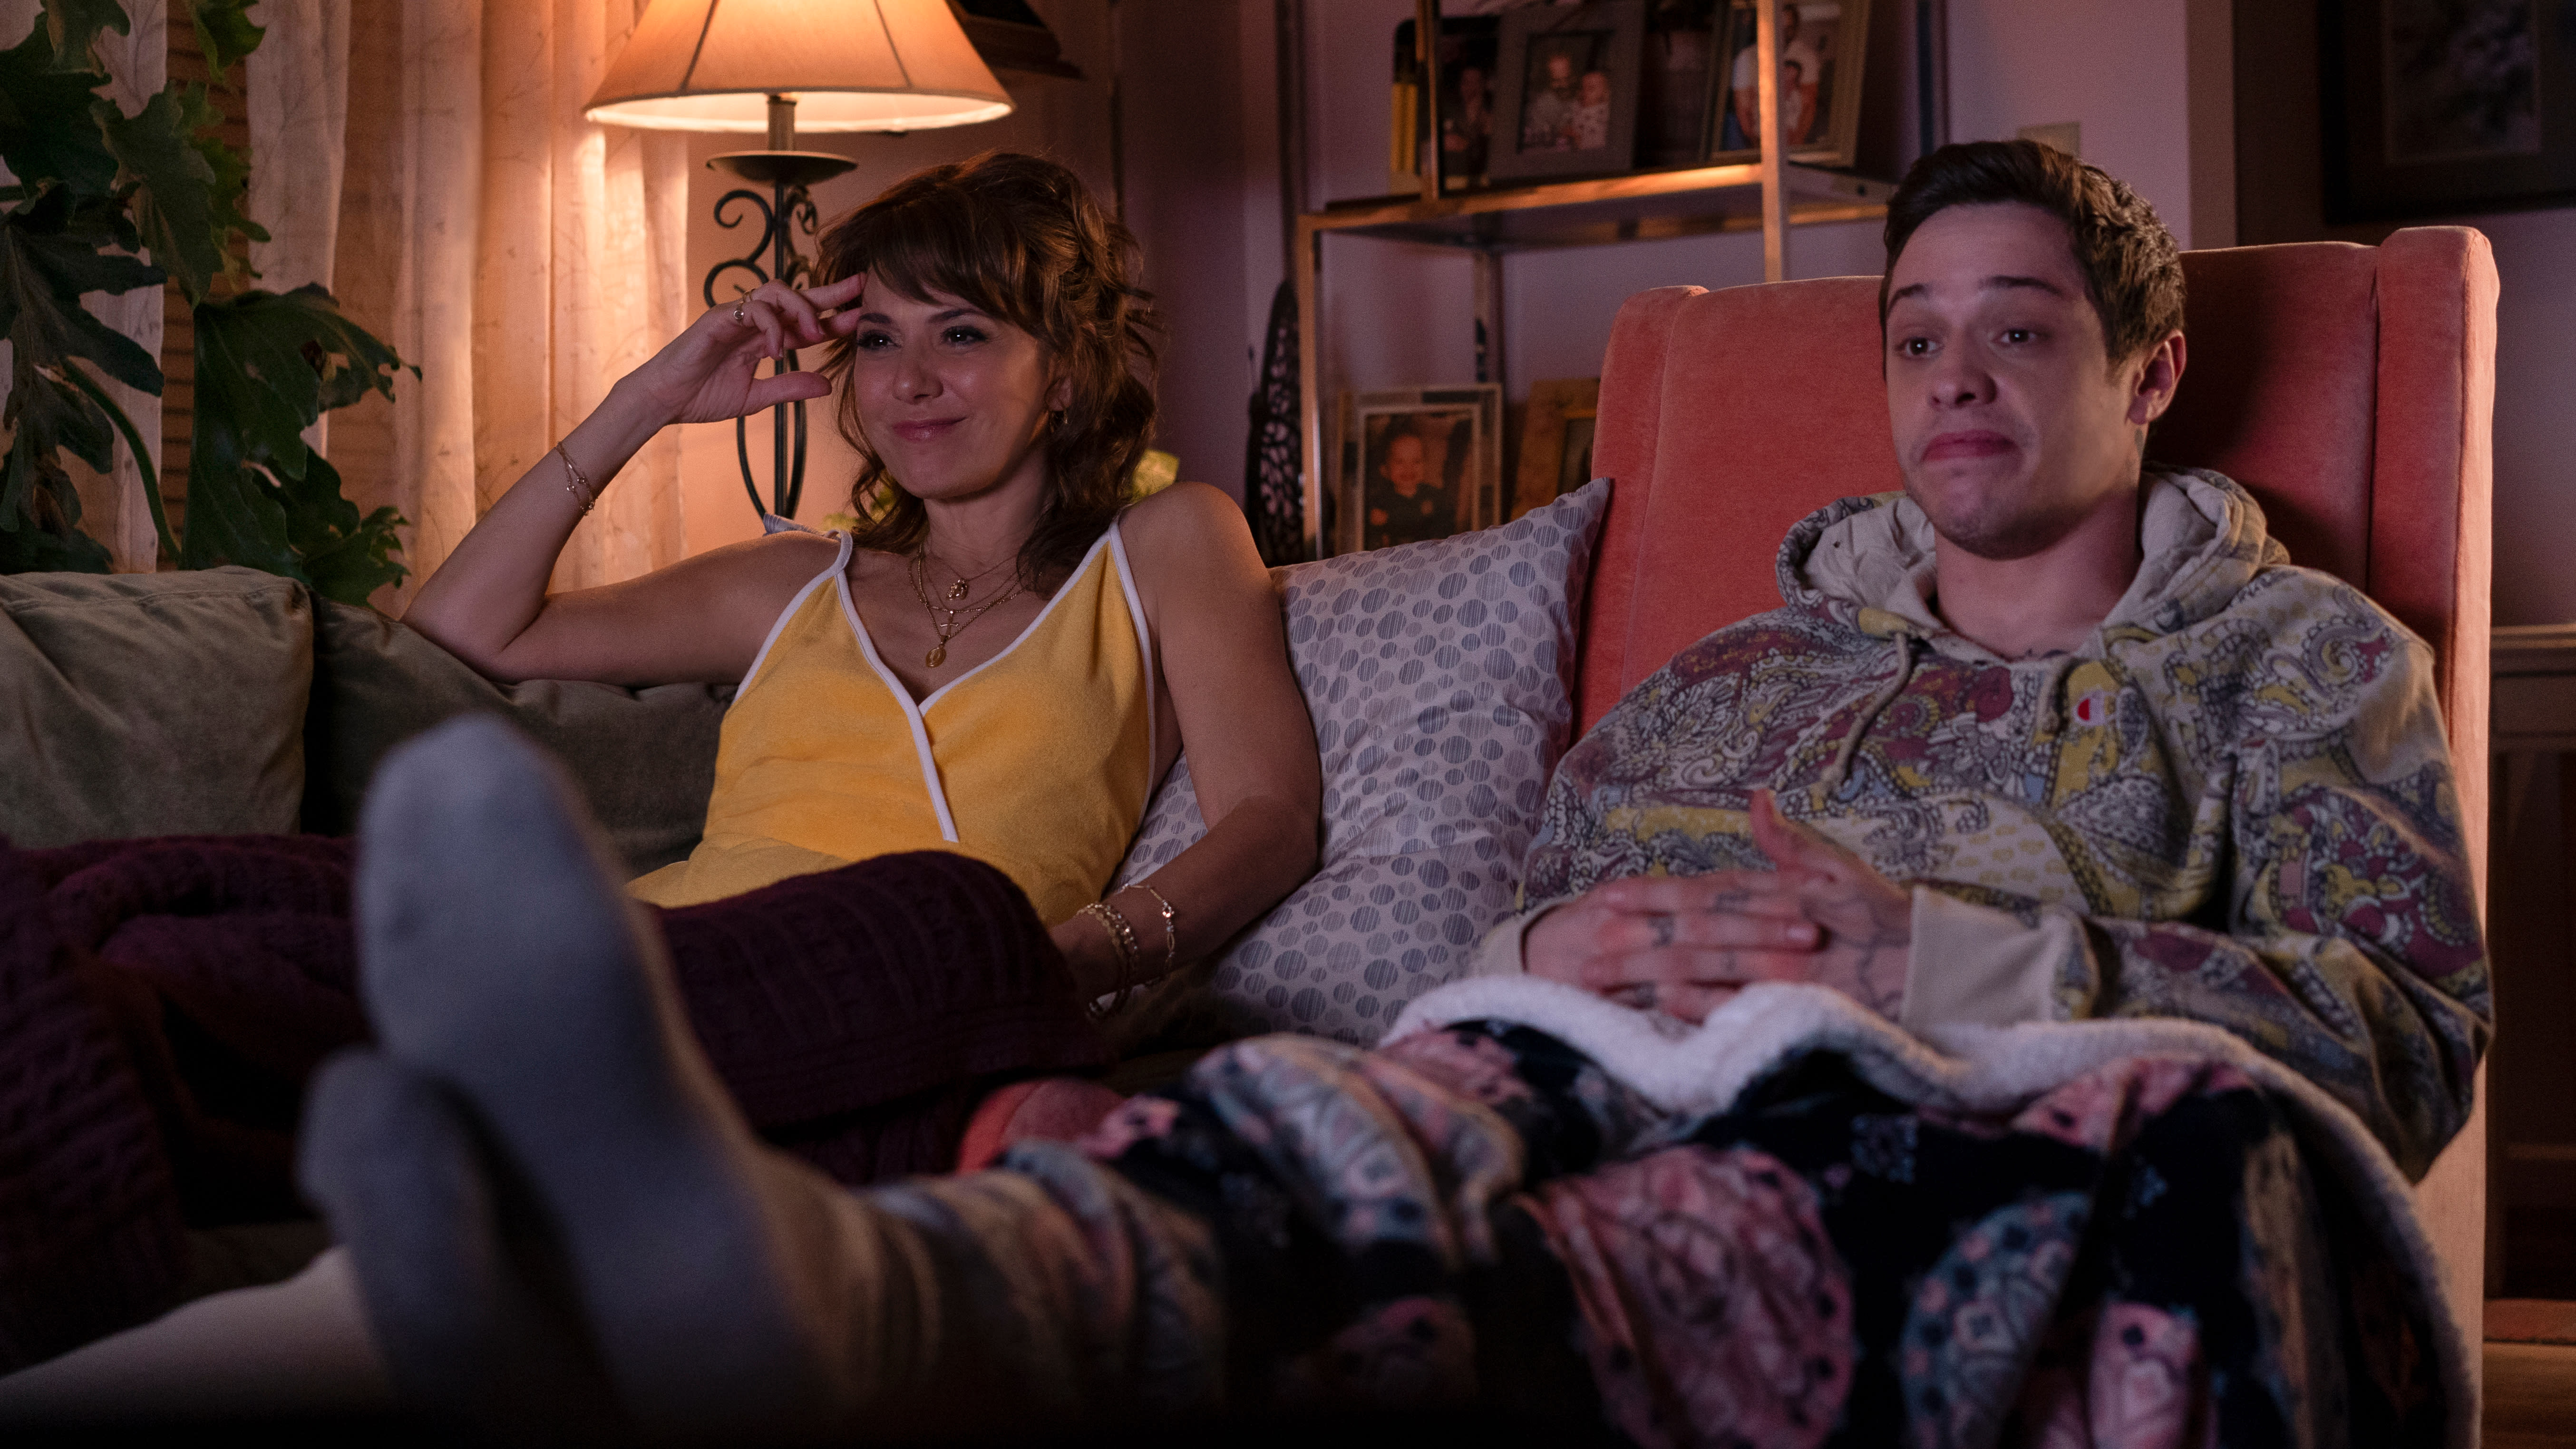 Marisa Tomei and Pete Davidson in 'The King of Staten Island'. (Credit: Mary Cybulski/Universal)